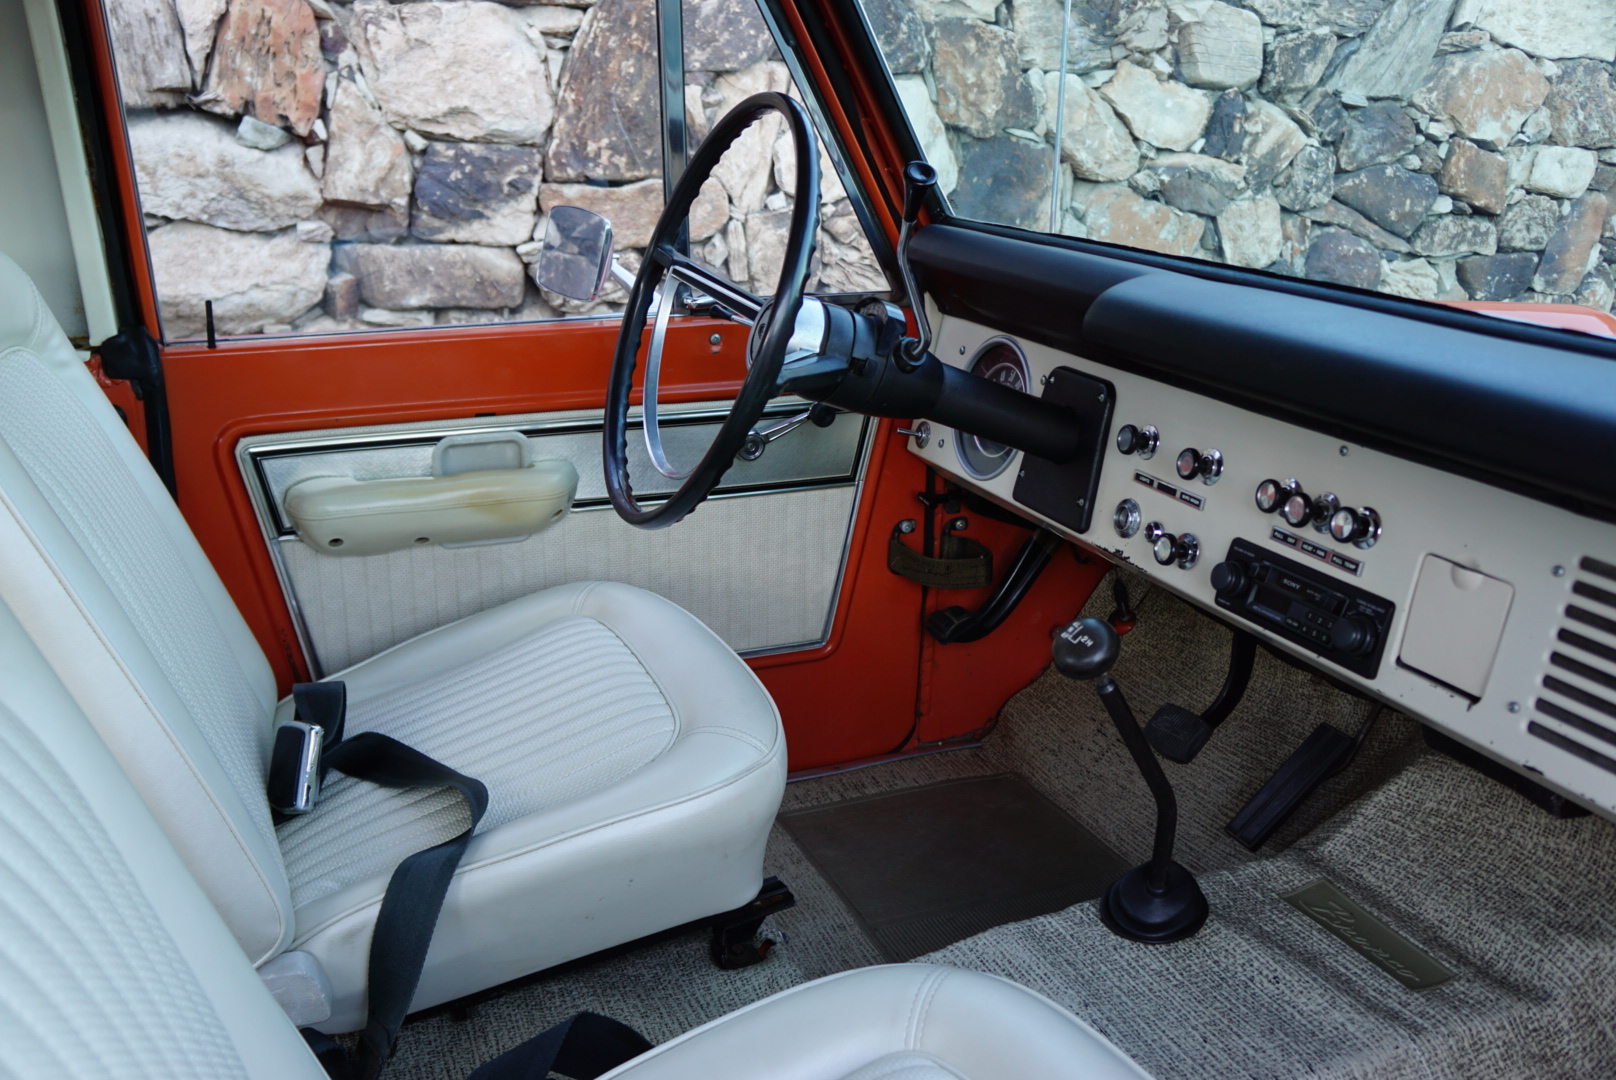 1974 Ford Bronco interior